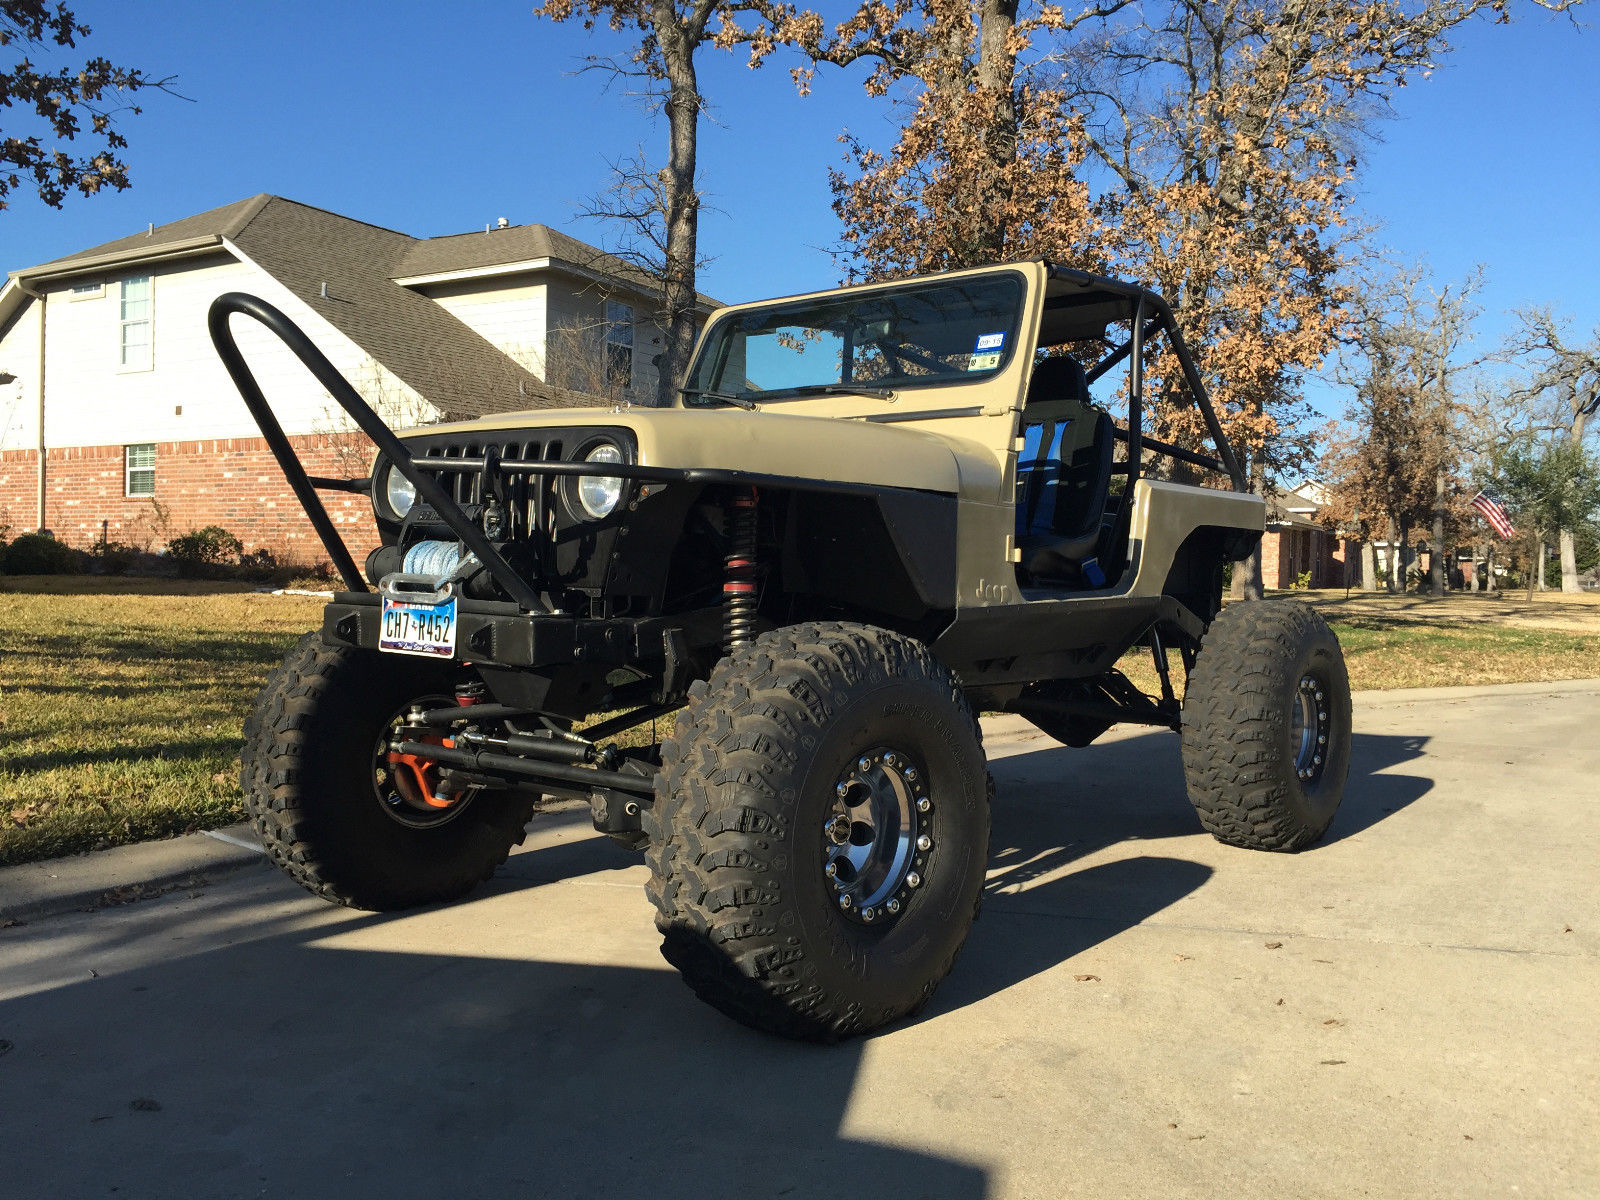 1992 Jeep Wrangler Yj Custom Rock Crawler Street Legal For Sale In Dash College Station Texas United States